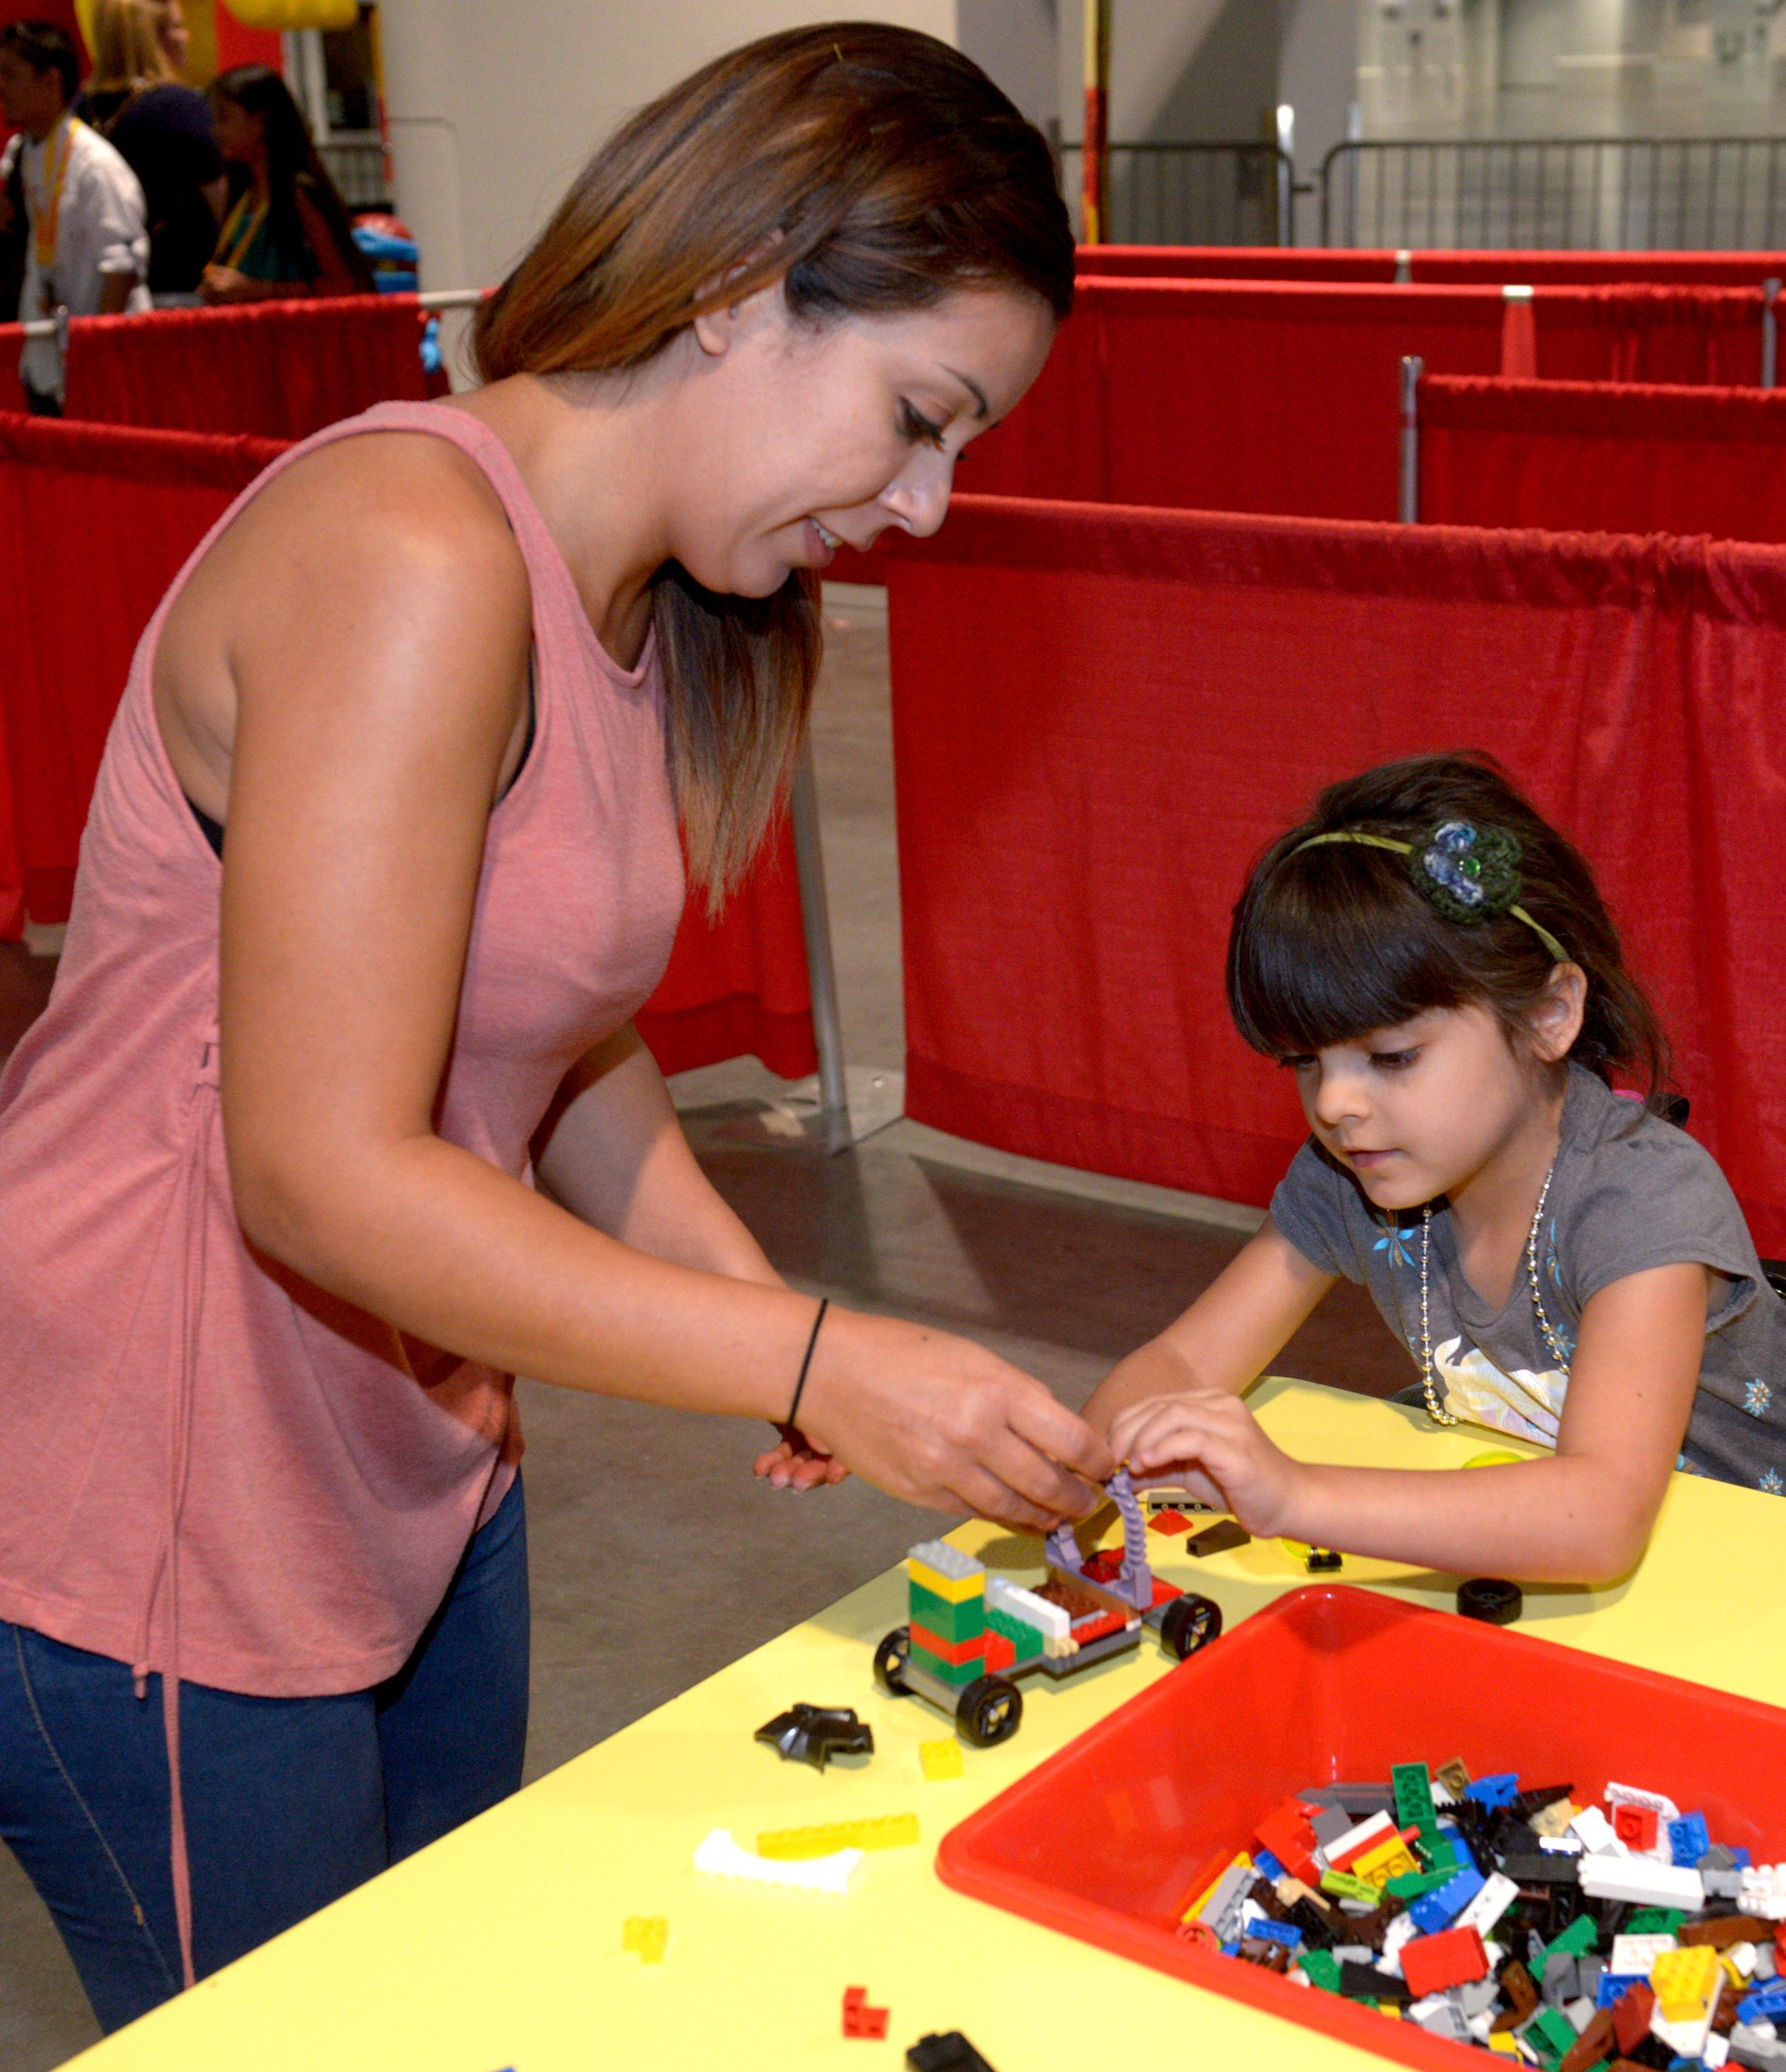 Mom helps put the finishing touches on their Lego car before they head to the Lego speedway during the Brick Fest Live Lego Fan Experience at the Las Vegas Convention Center, September 9, 2017. [Glenn Pinkerton/Las Vegas News Bureau]